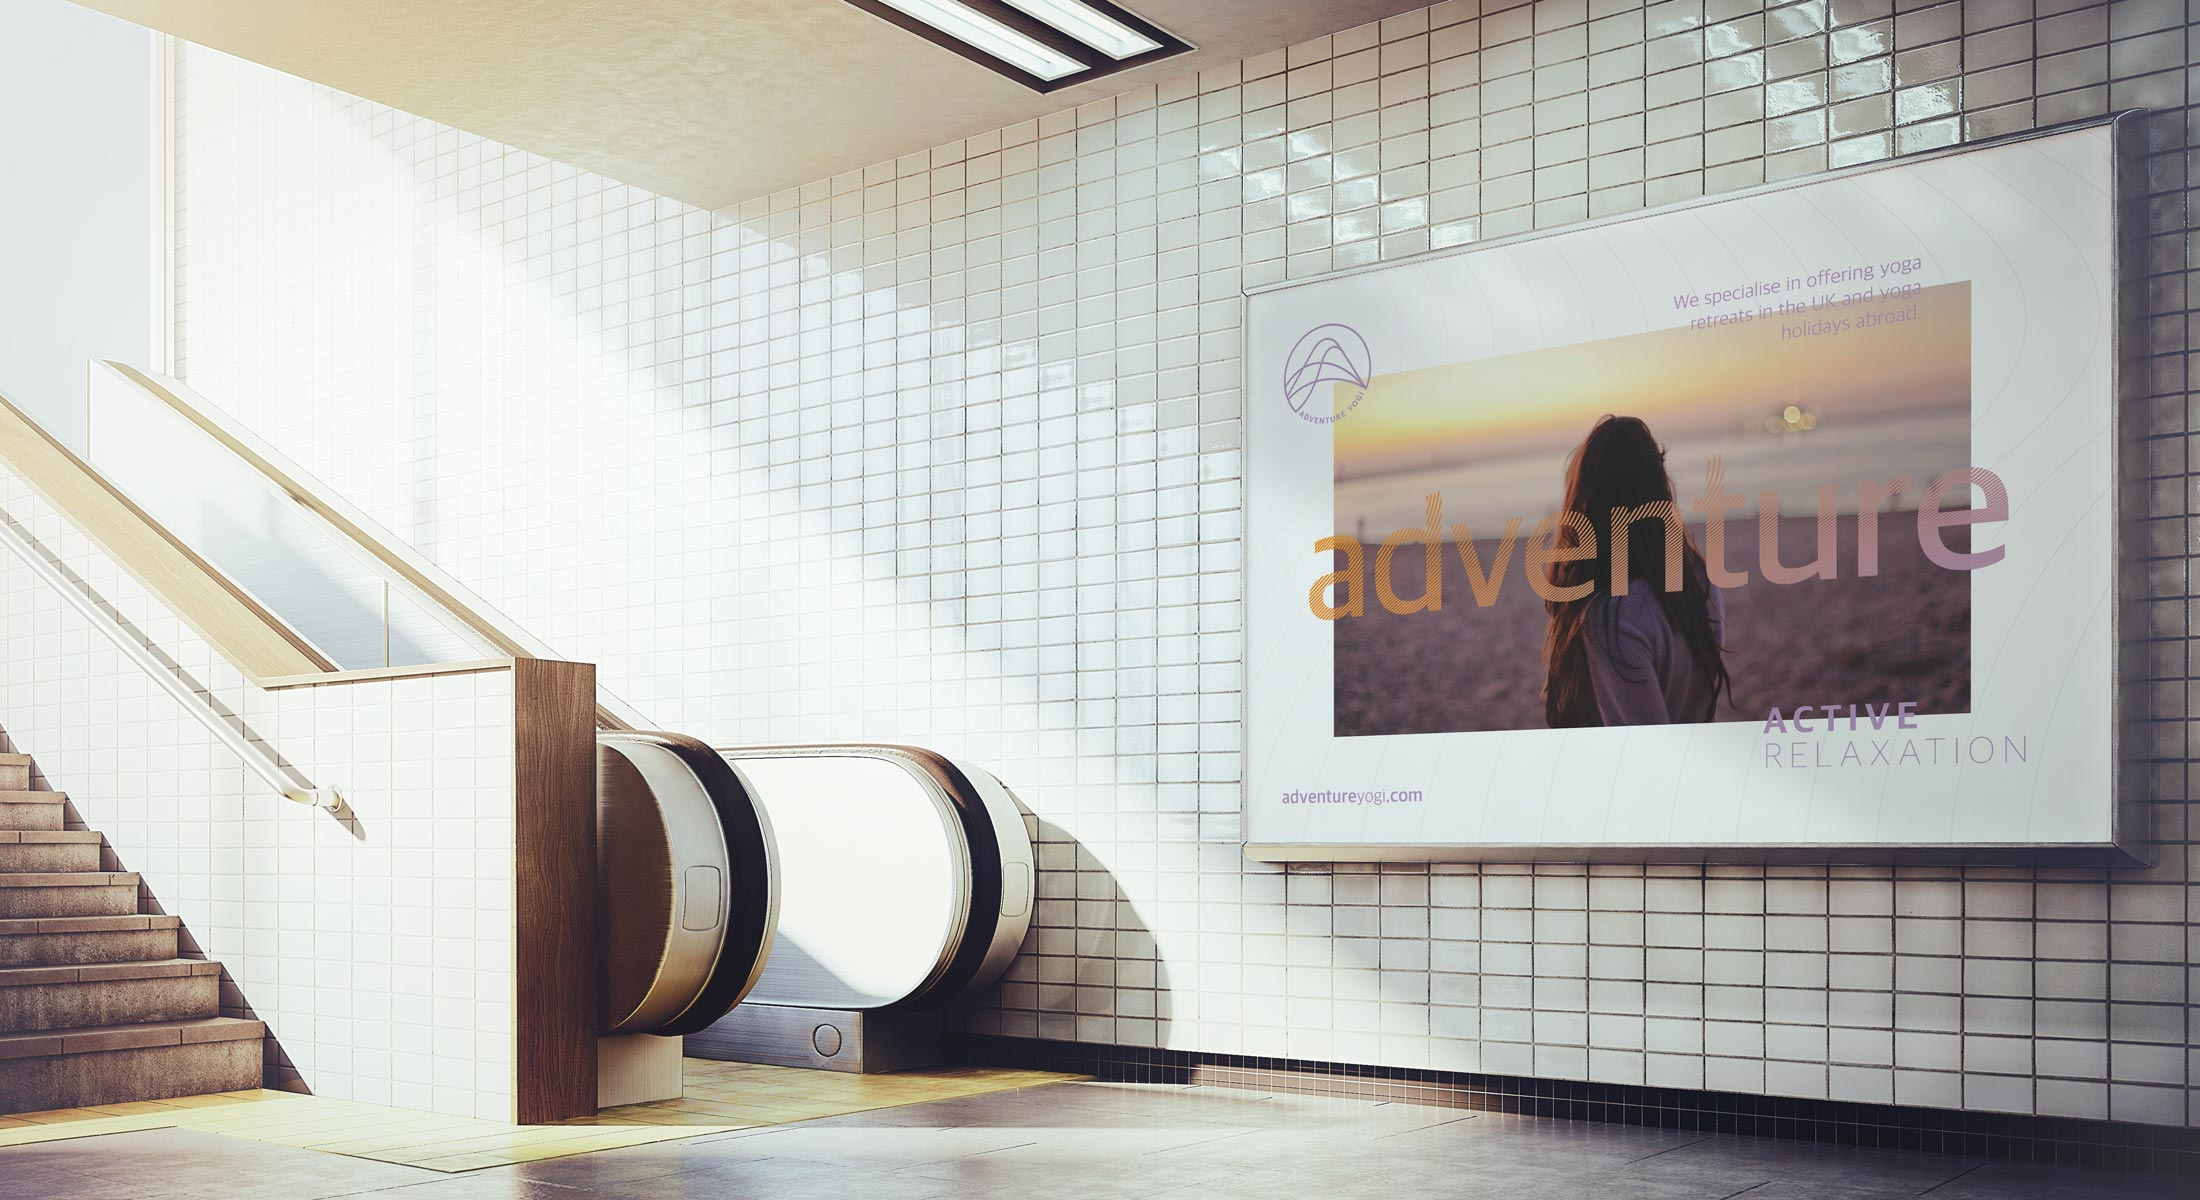 Adventure Yogi Billboard in a tube station with white tiles, stairs and an escalator